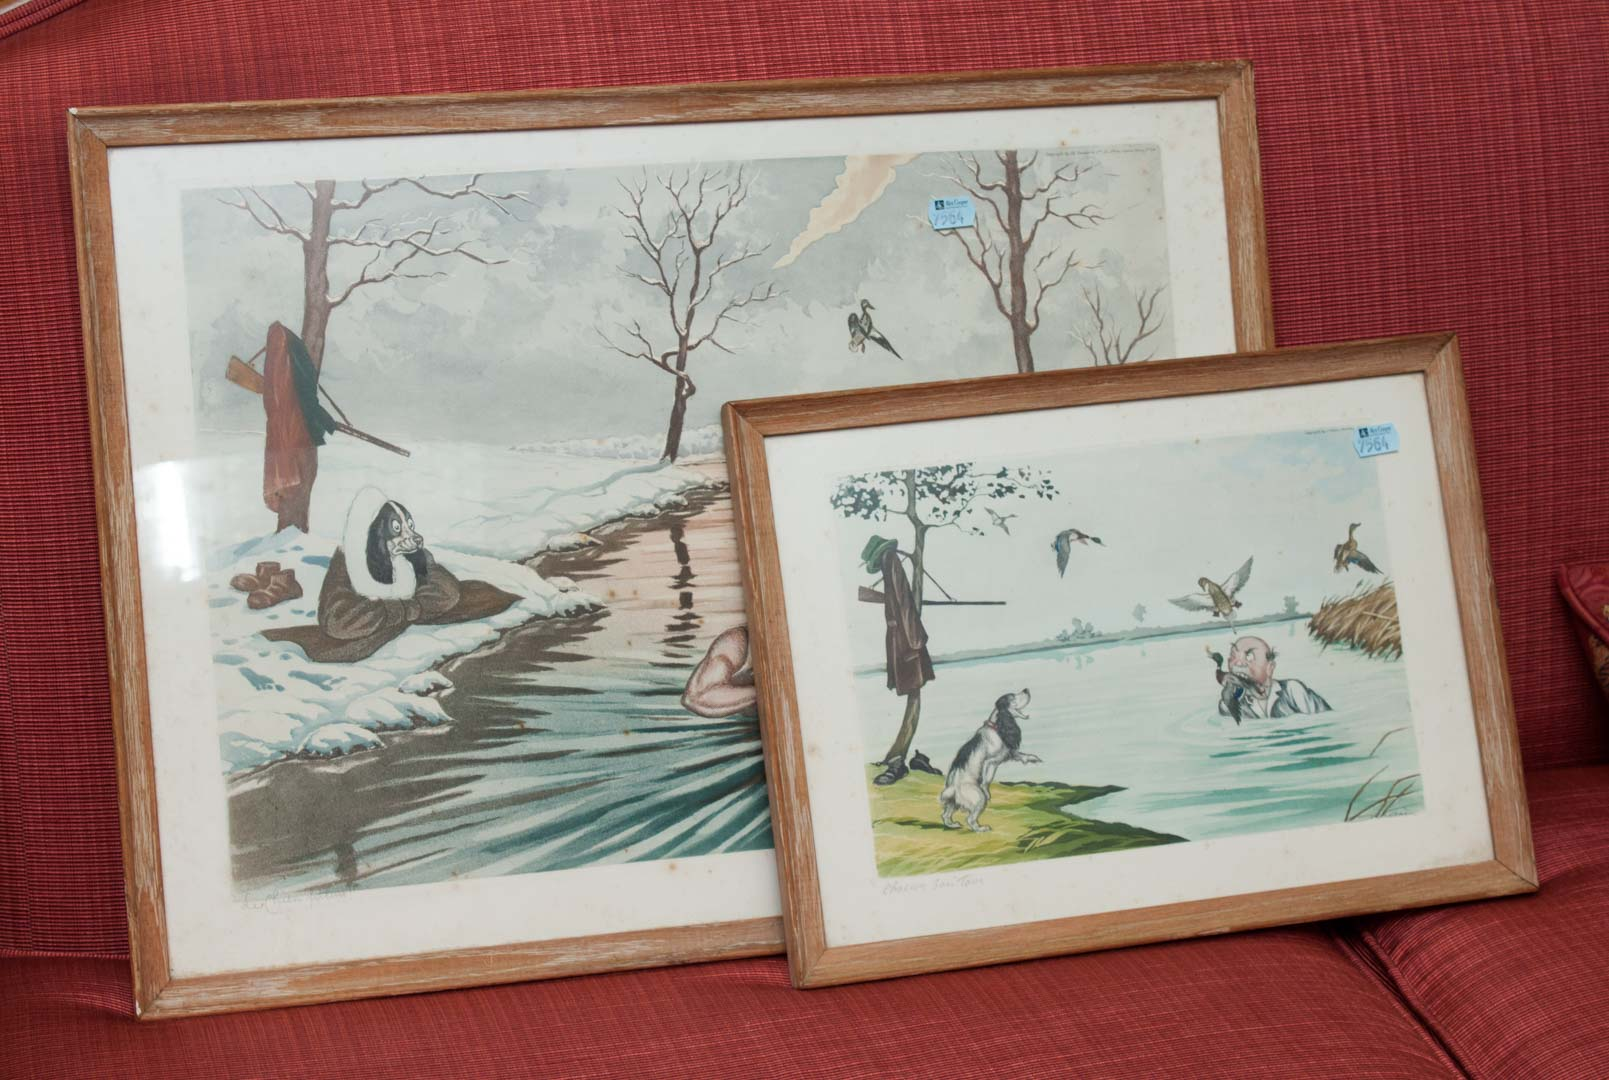 Price guide for Two framed prints of duck hunting by O\'Klein .